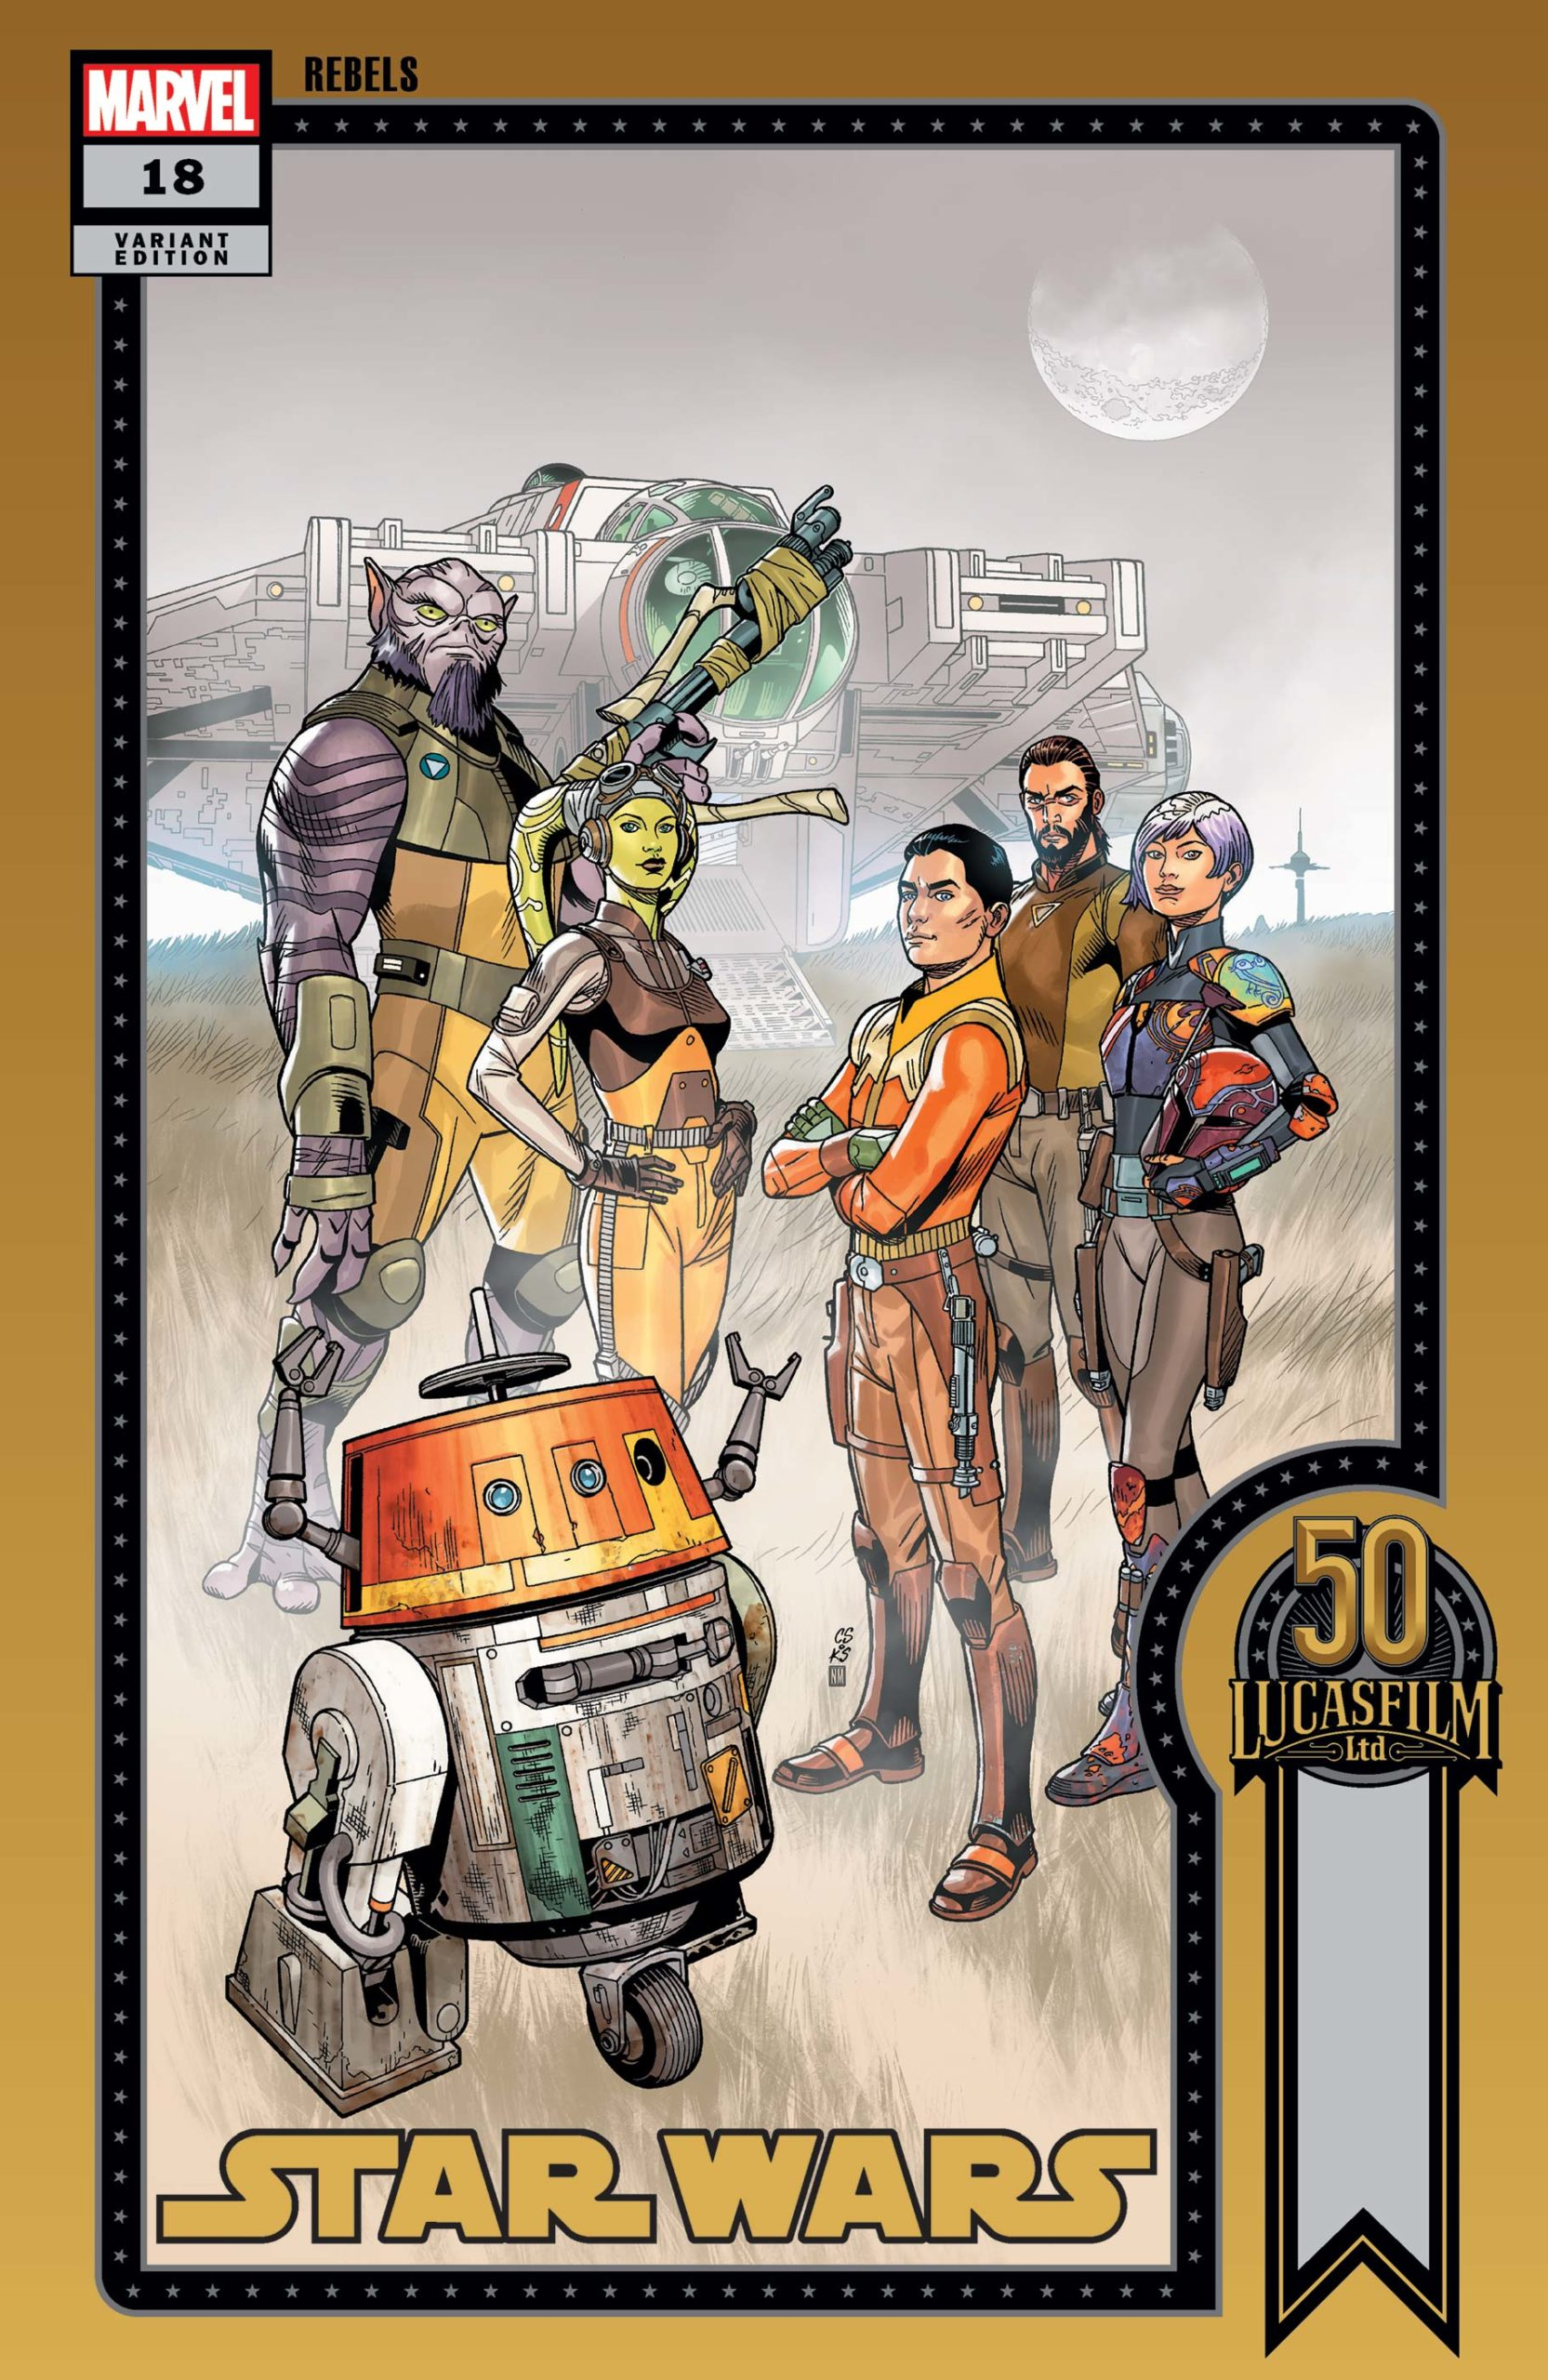 Star Wars #18 (Chris Sprouse Lucasfilm 50th Anniversary Variant Cover) (27.10.2021)